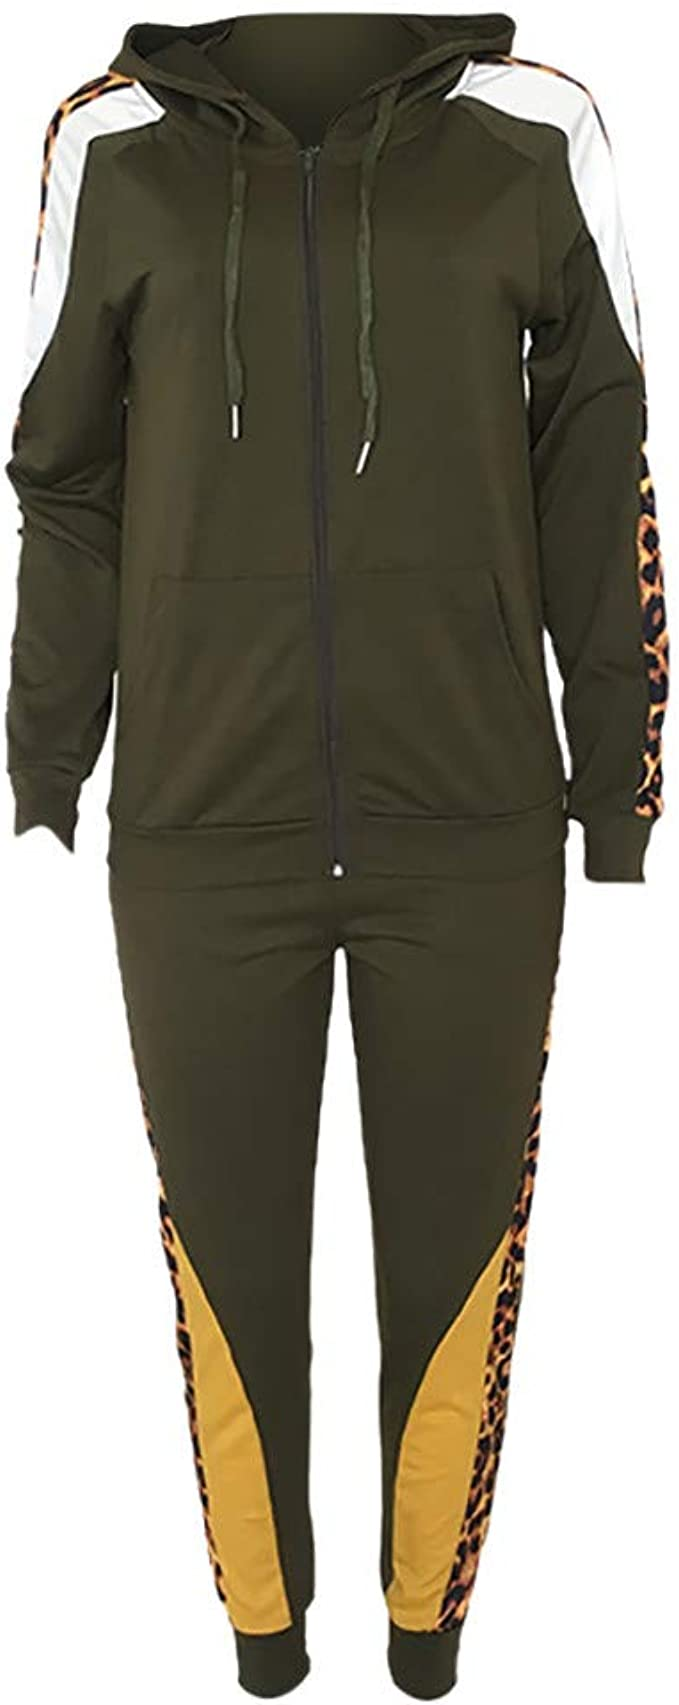 Dainzuy Women 2 Piece Outfits Tracksuit Sets Color Block Full Zip Jacket and Skinny Long Pant Sport Set Sweatsuits